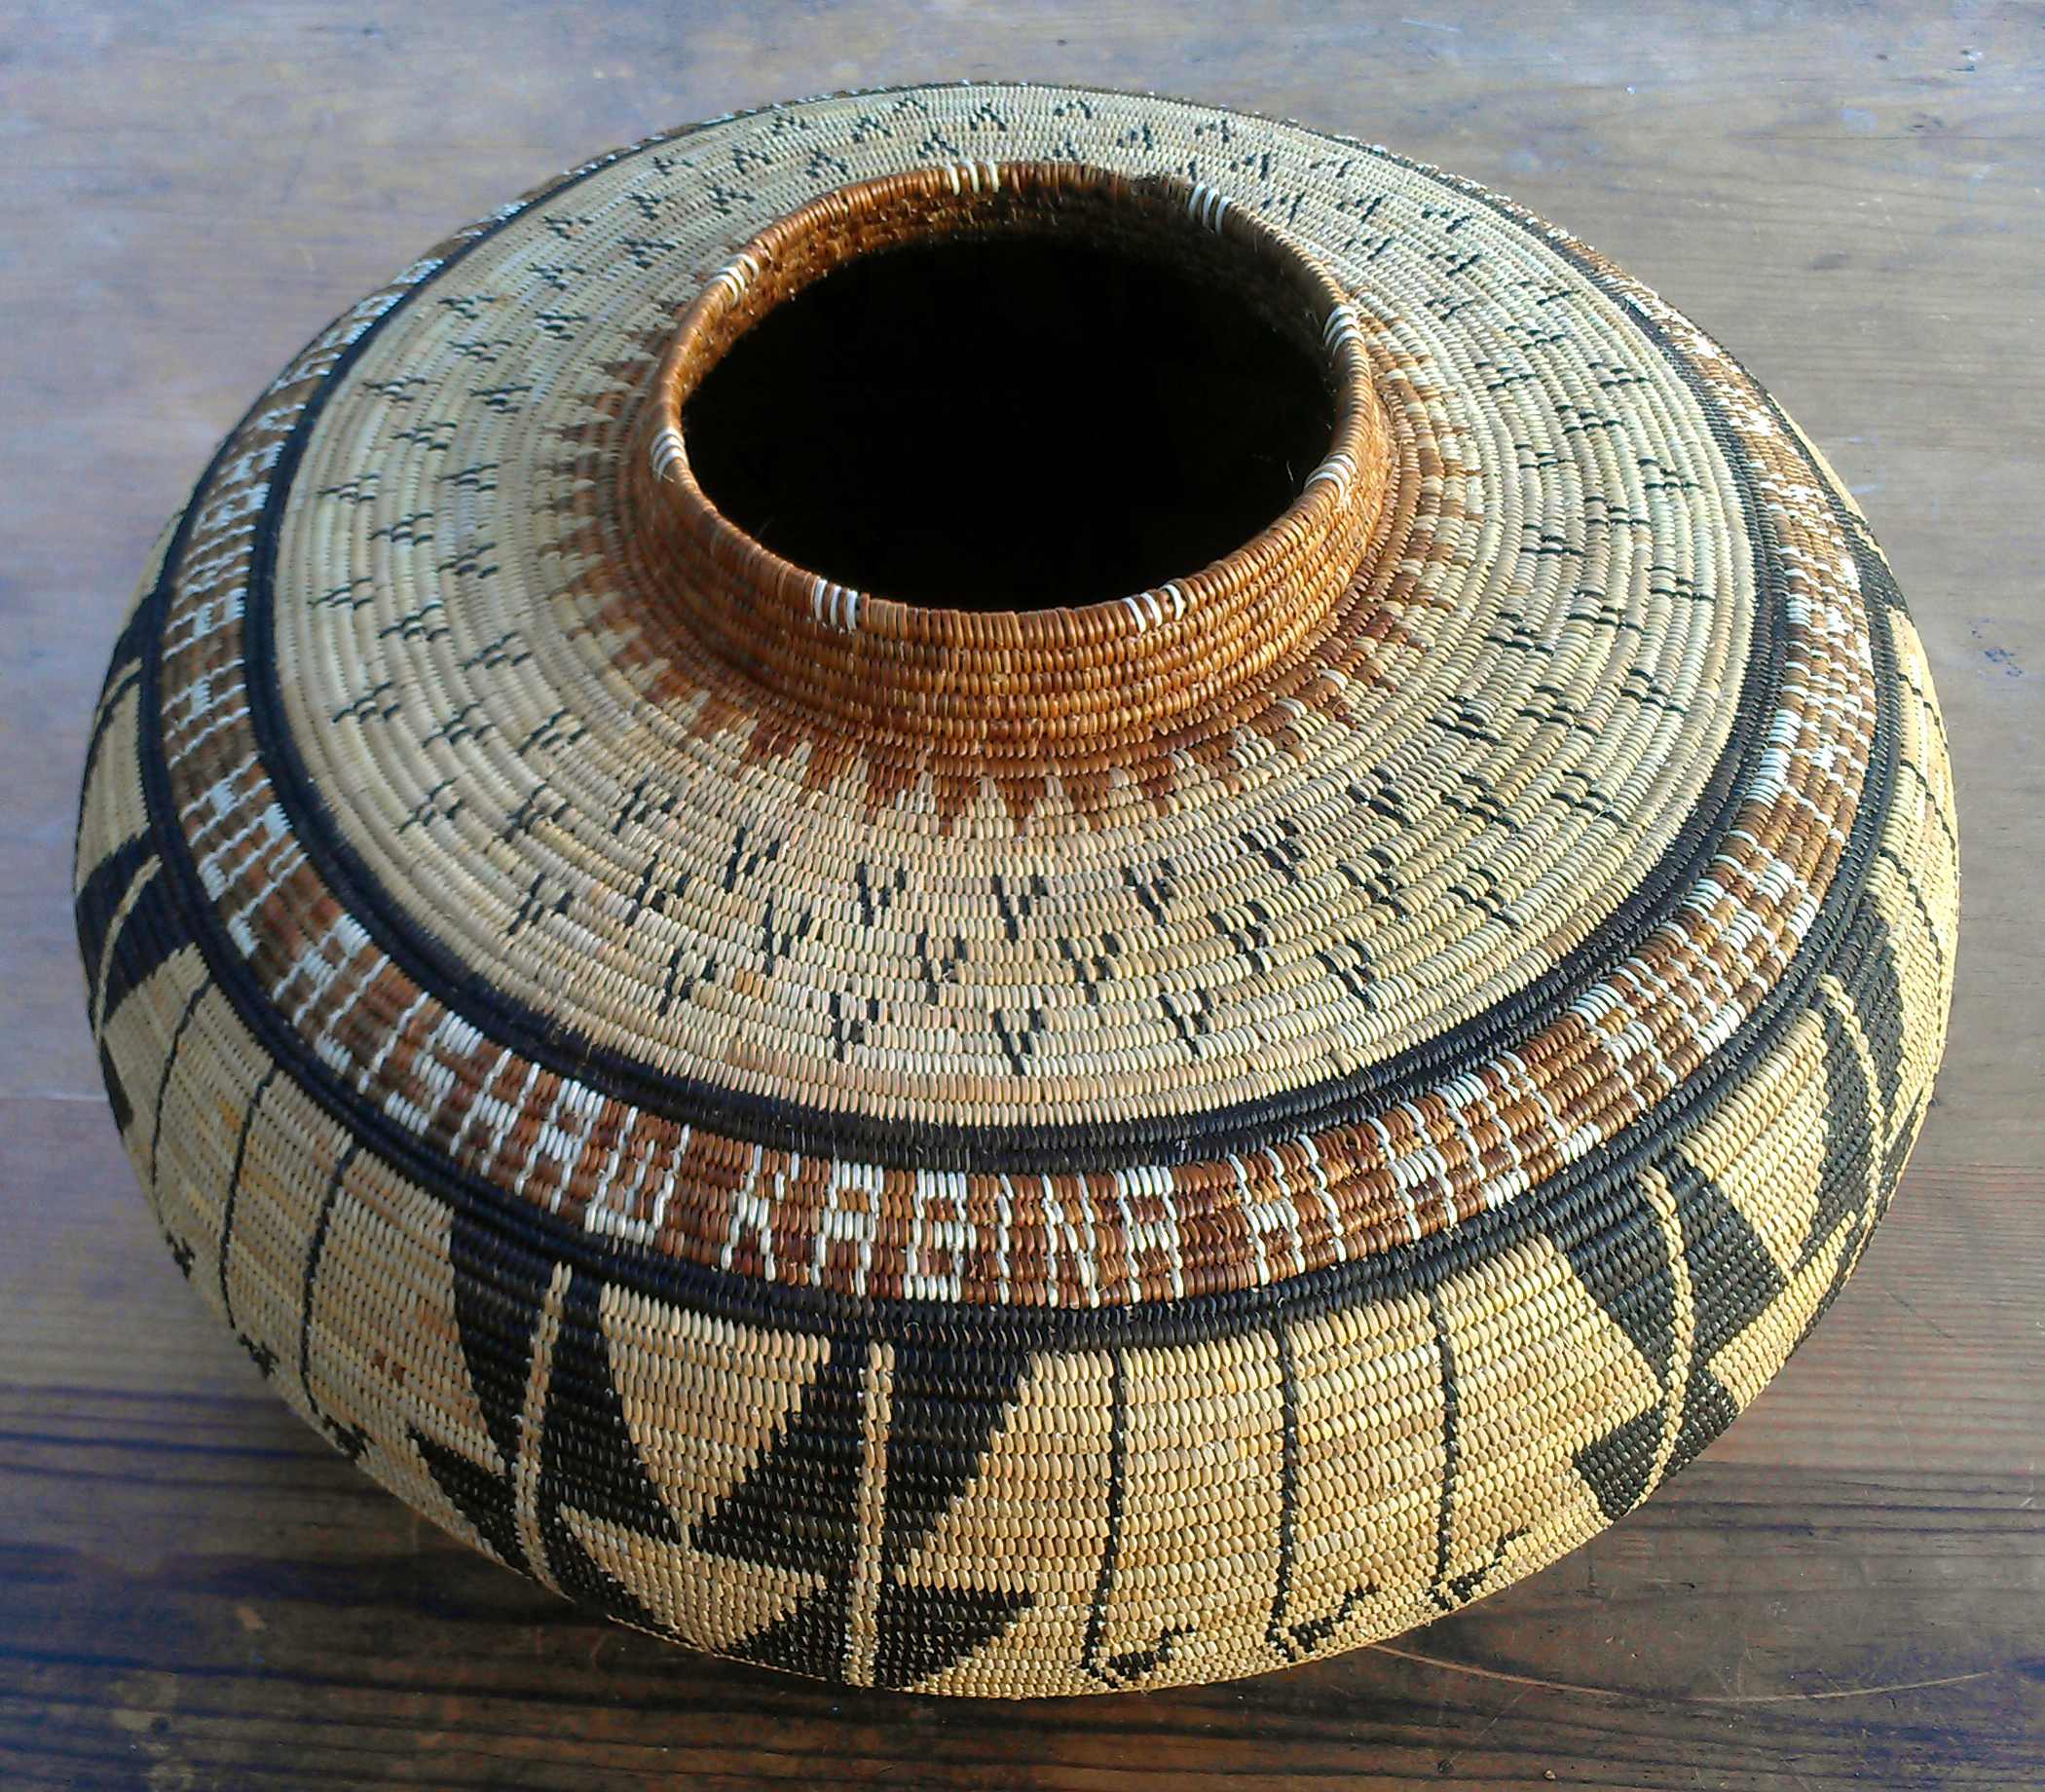 Chumash Basket for Storage of Ceremonial Plants by Timara Lotah Link.